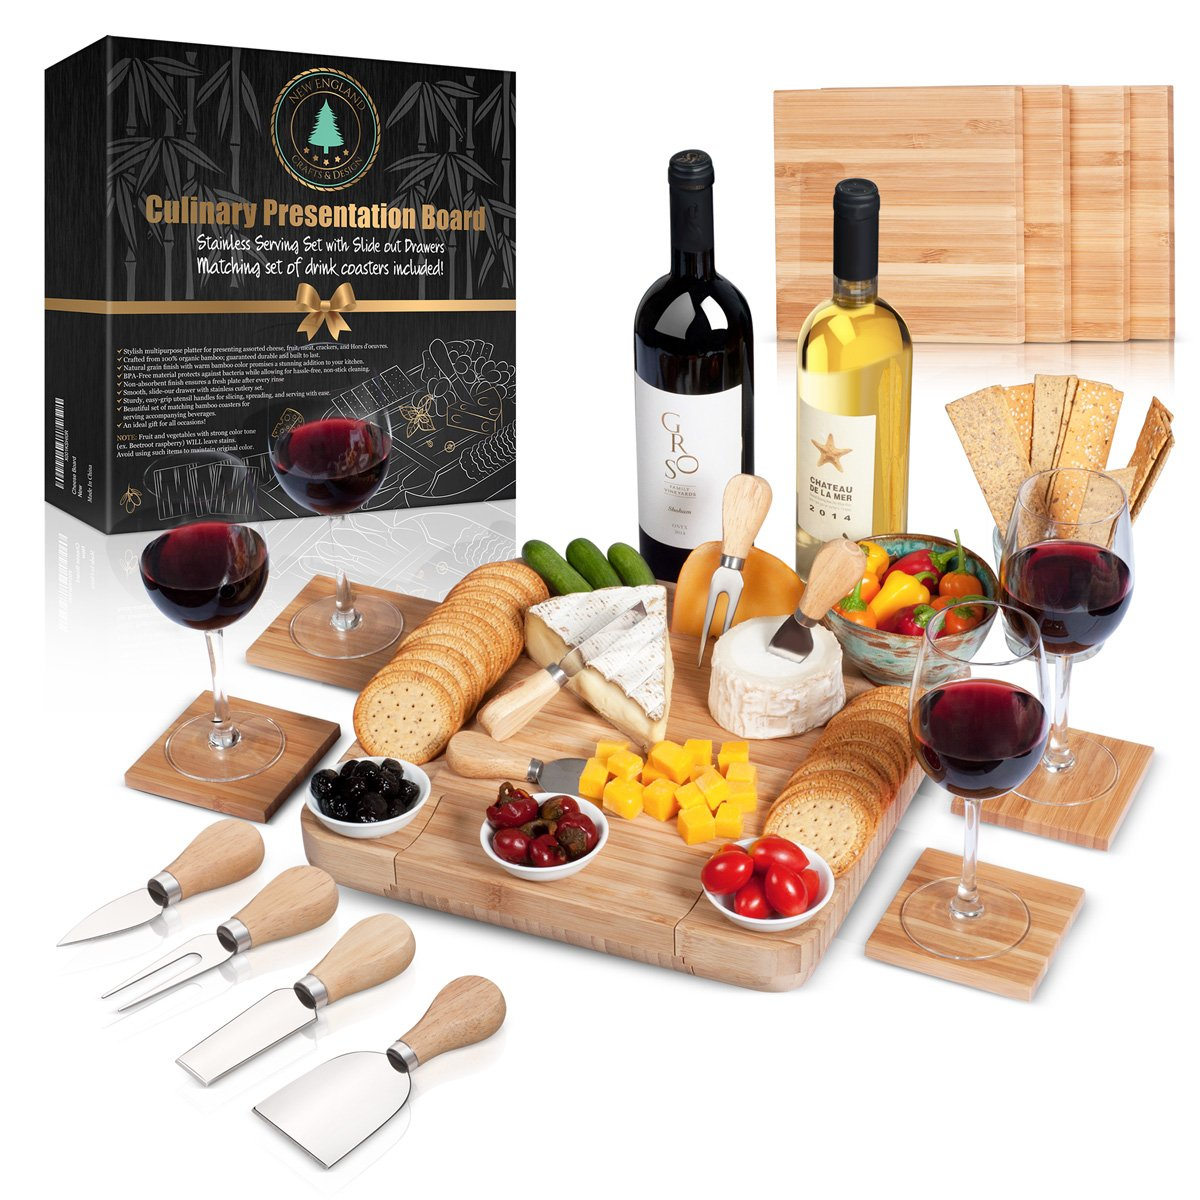 Cheese Board Set: 13x13.4x2 Inch All Bamboo Tray with Slide Out Drawer, 4-Piece Cutlery, Coasters and Guide in a Gift Box